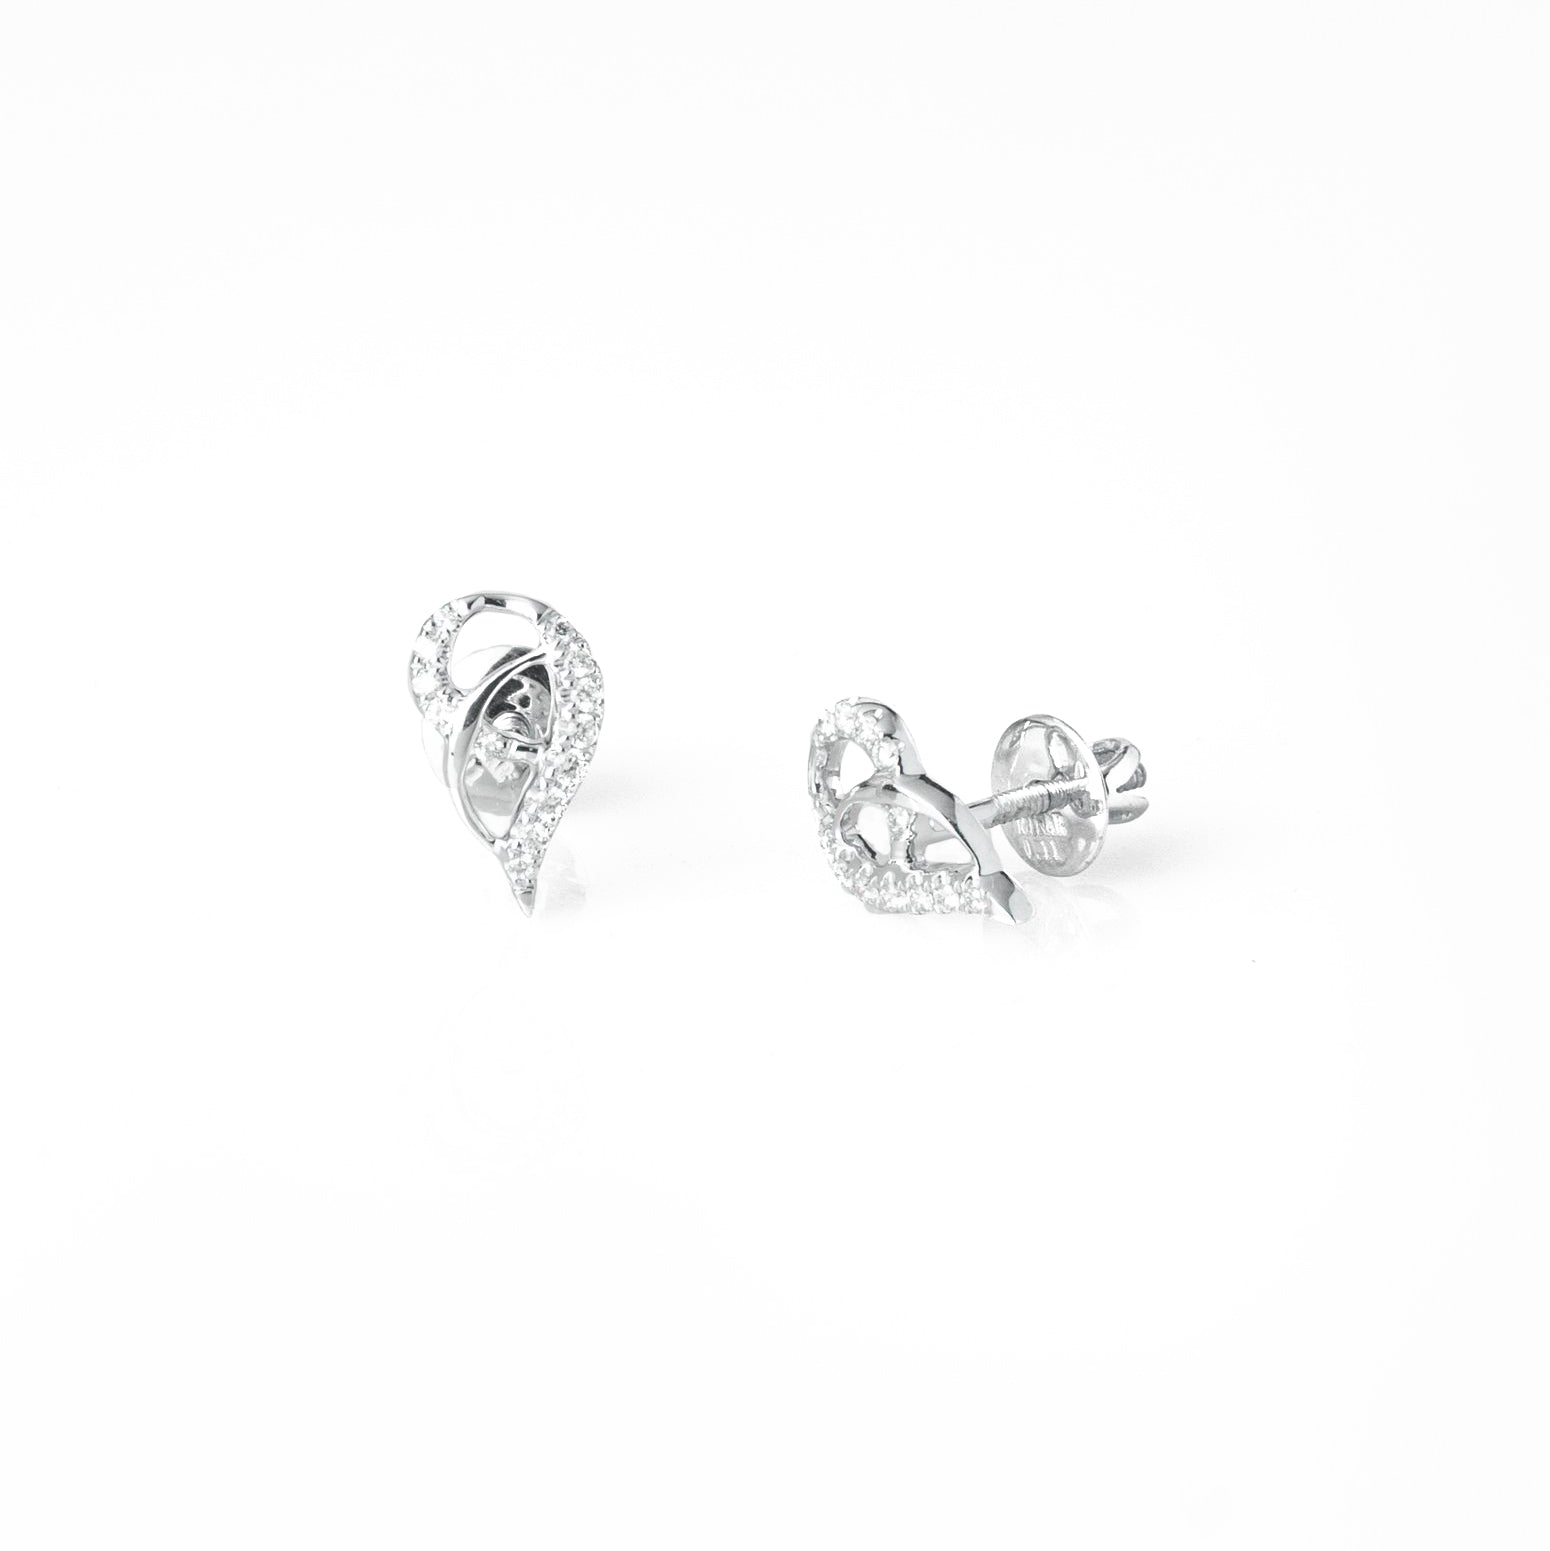 18ct White Gold Diamond Earrings (MCS3684)